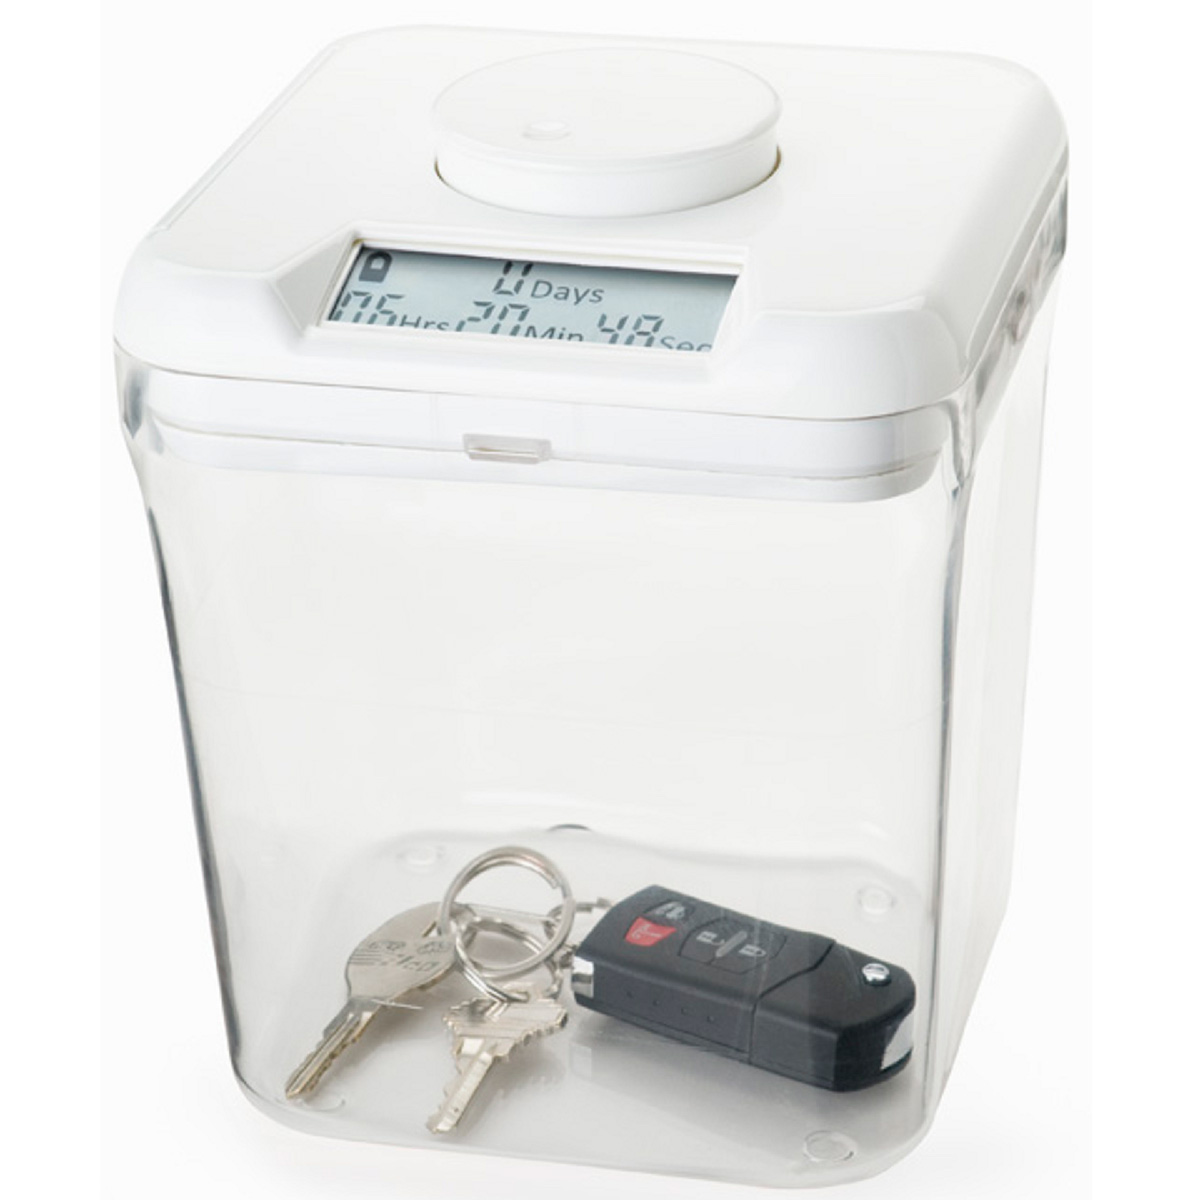 The Kitchen Safe Time Locking Container